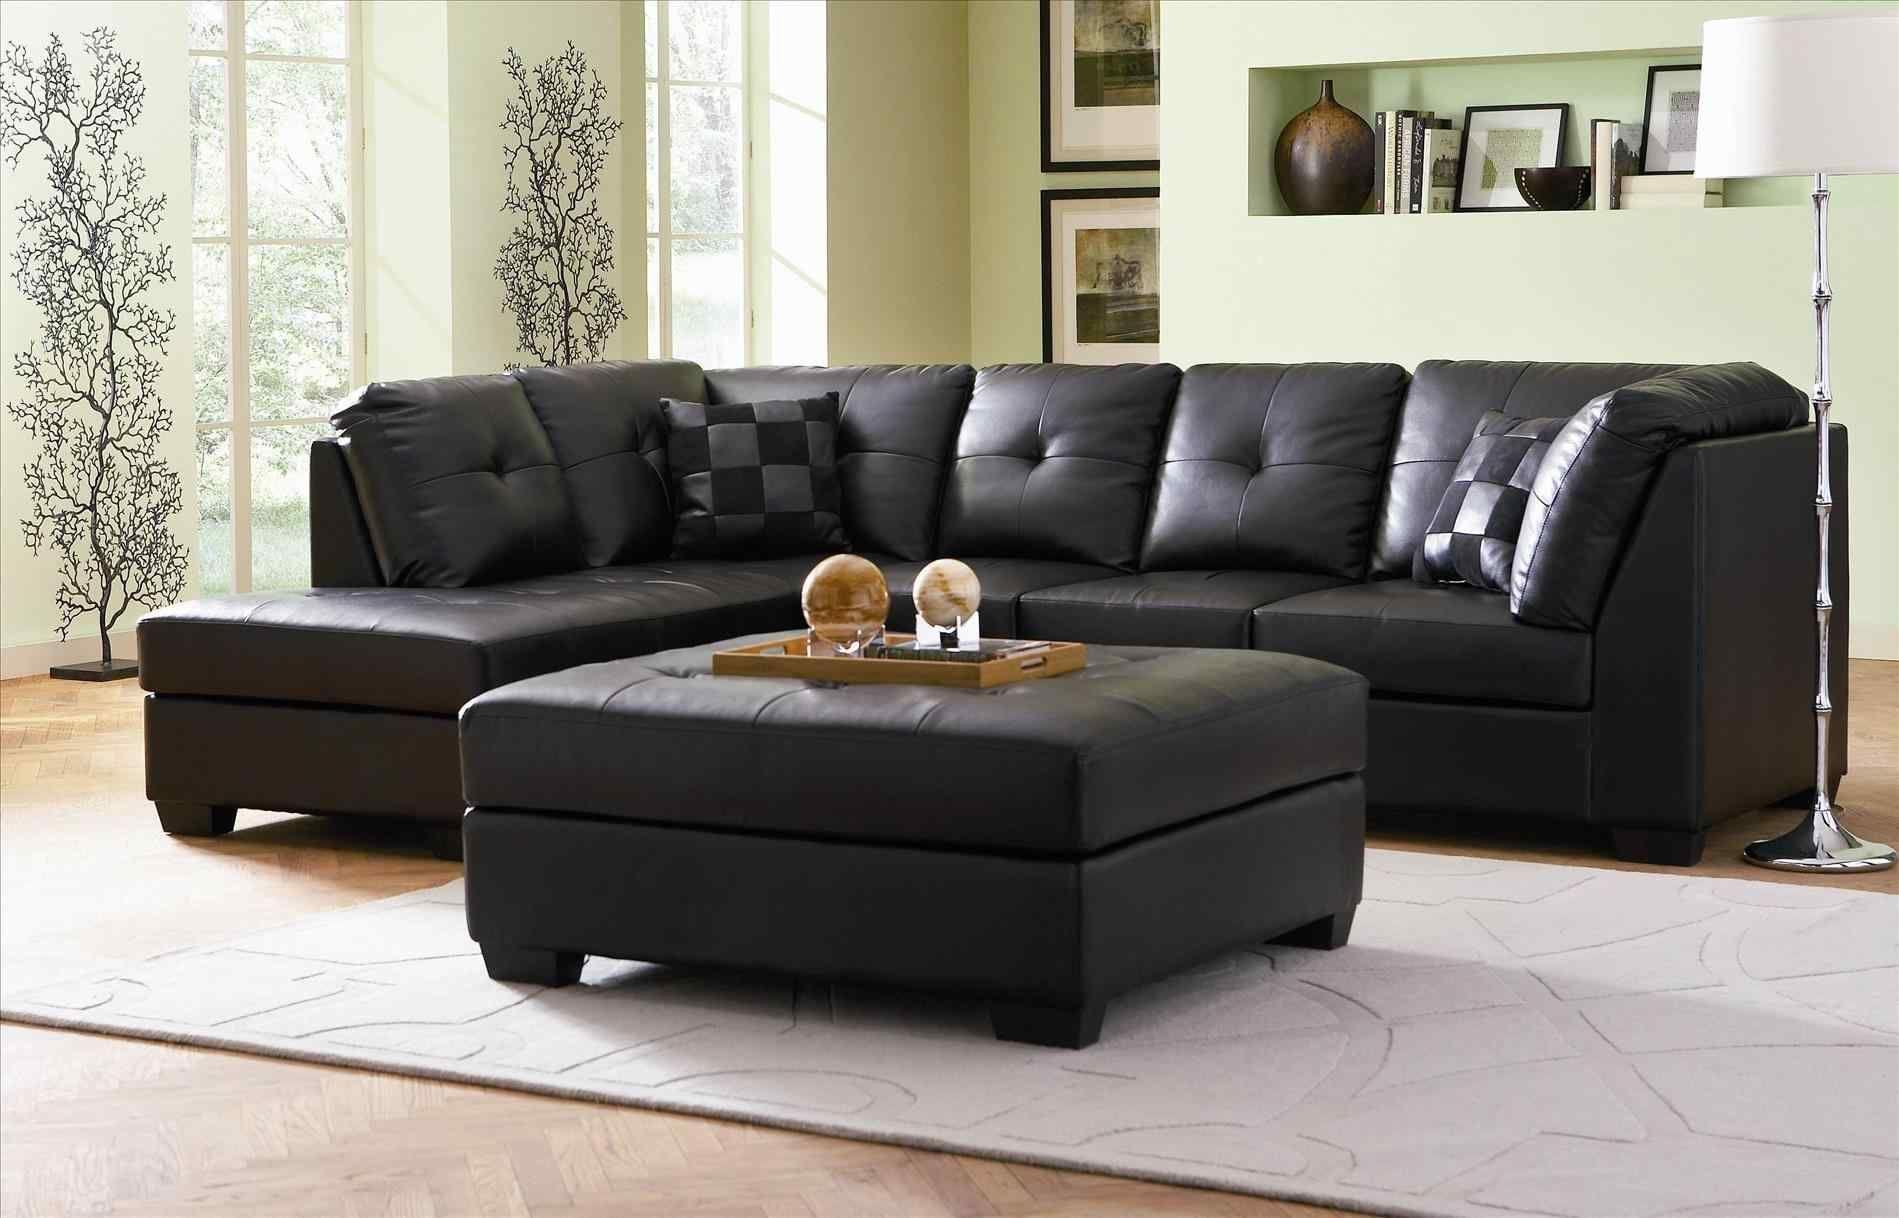 Excellent Woodleyus Sam Sectional Sofas Colorado Springs Moore Living Gmtry Best Dining Table And Chair Ideas Images Gmtryco